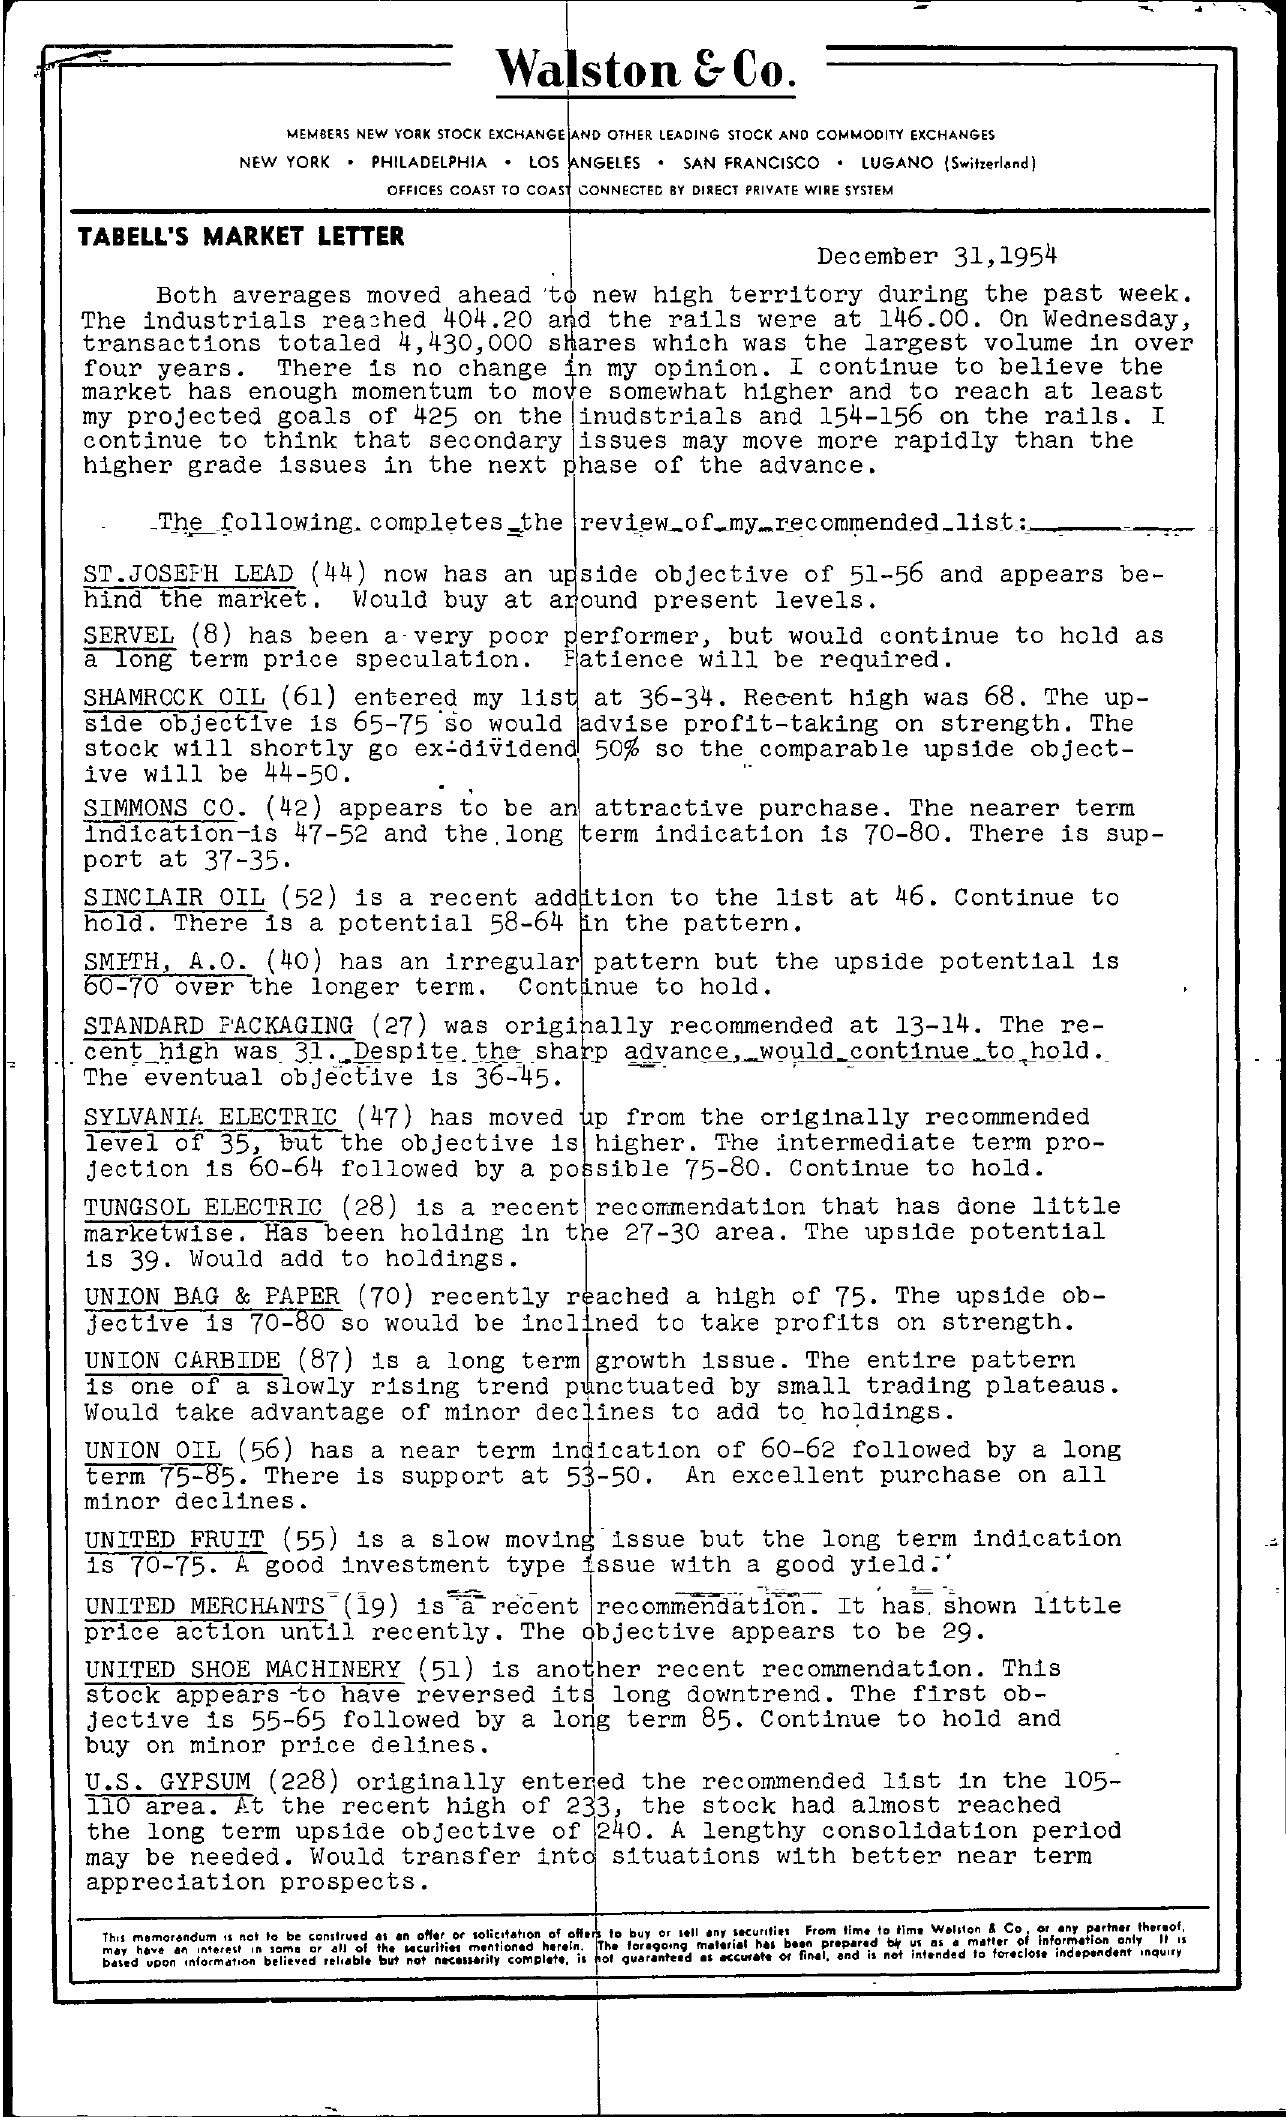 Tabell's Market Letter - December 31, 1954 page 1